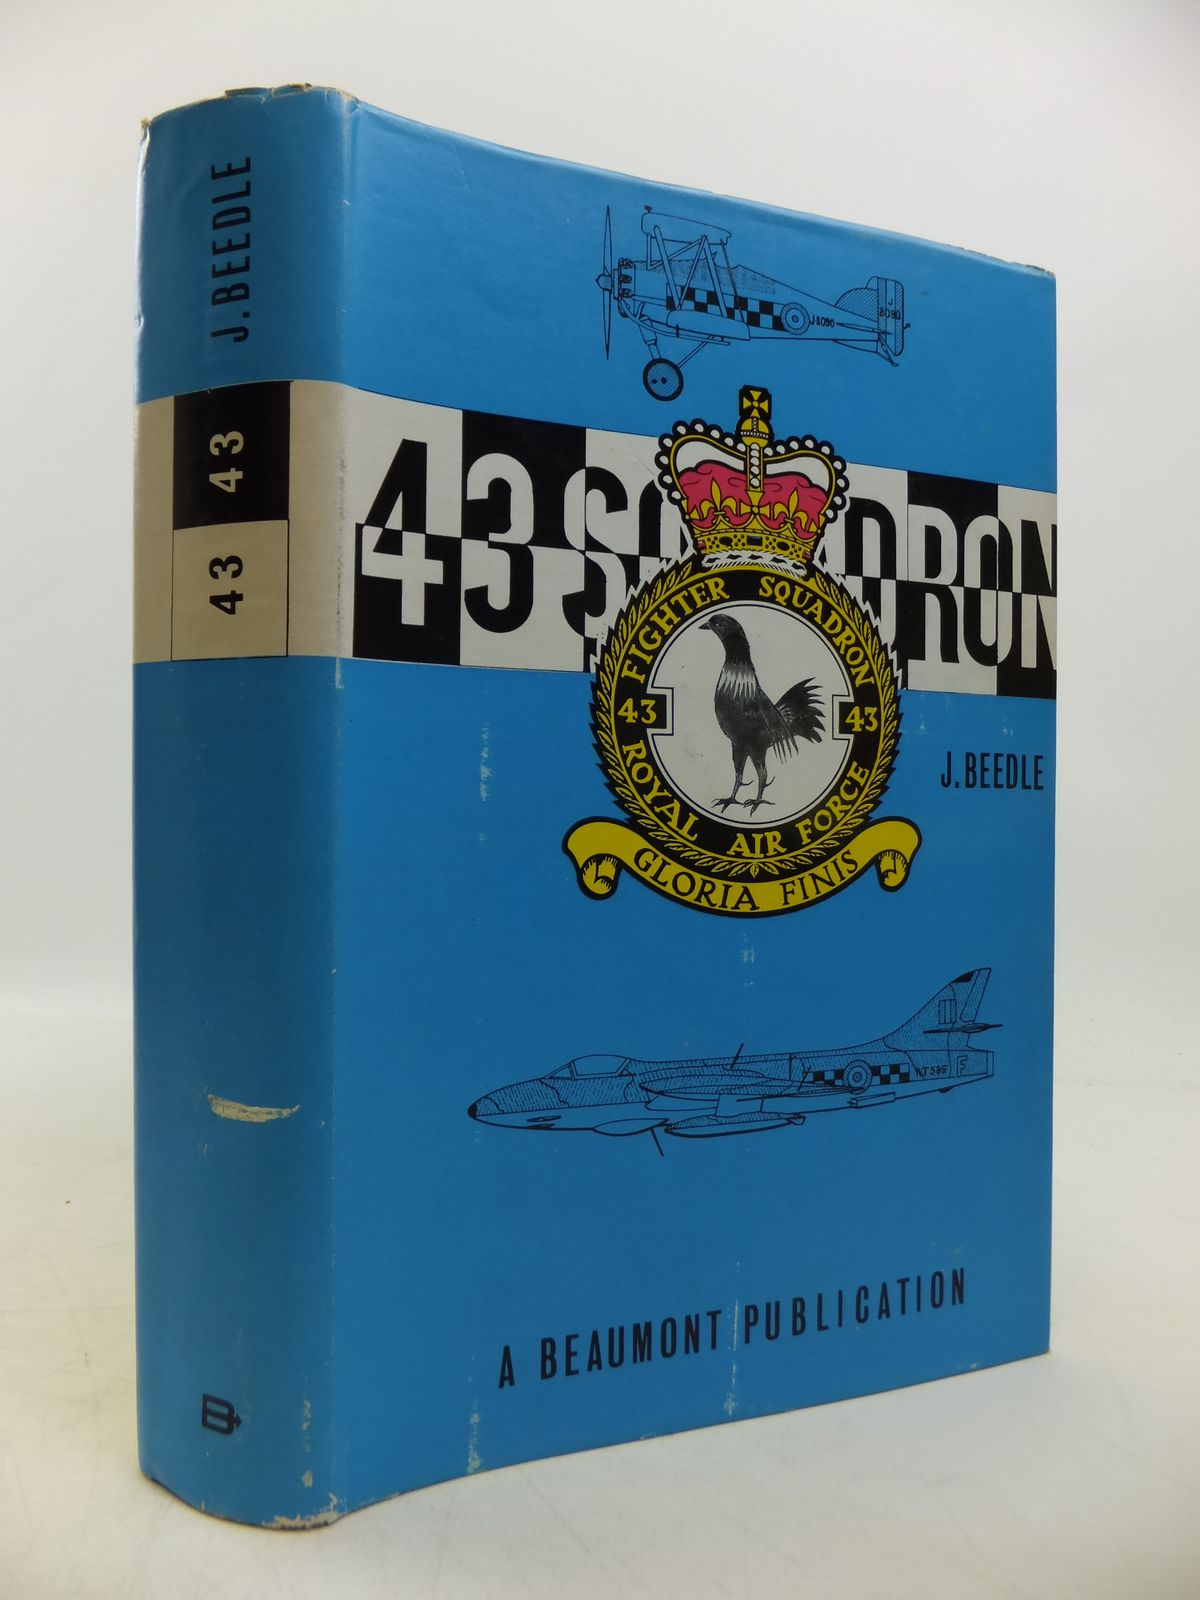 Photo of 43 SQUADRON ROYAL FLYING CORPS ROYAL AIR FORCE illustrated by Beedle, J. published by Beaumont Aviation Literature (STOCK CODE: 1811666)  for sale by Stella & Rose's Books